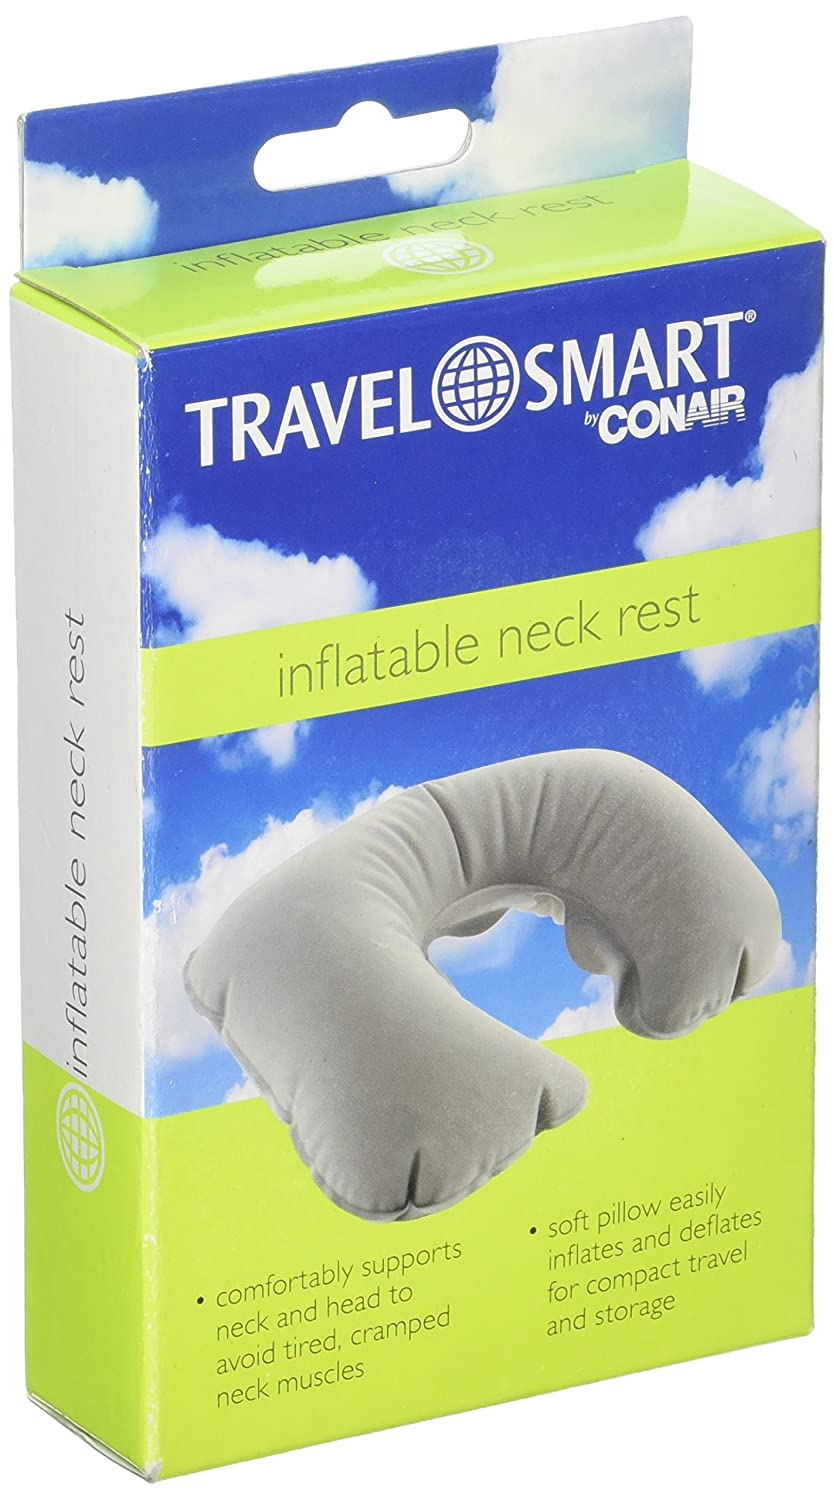 TRAVEL SMART BY CONAIR CNRP4200, Inflatable Neck Rest